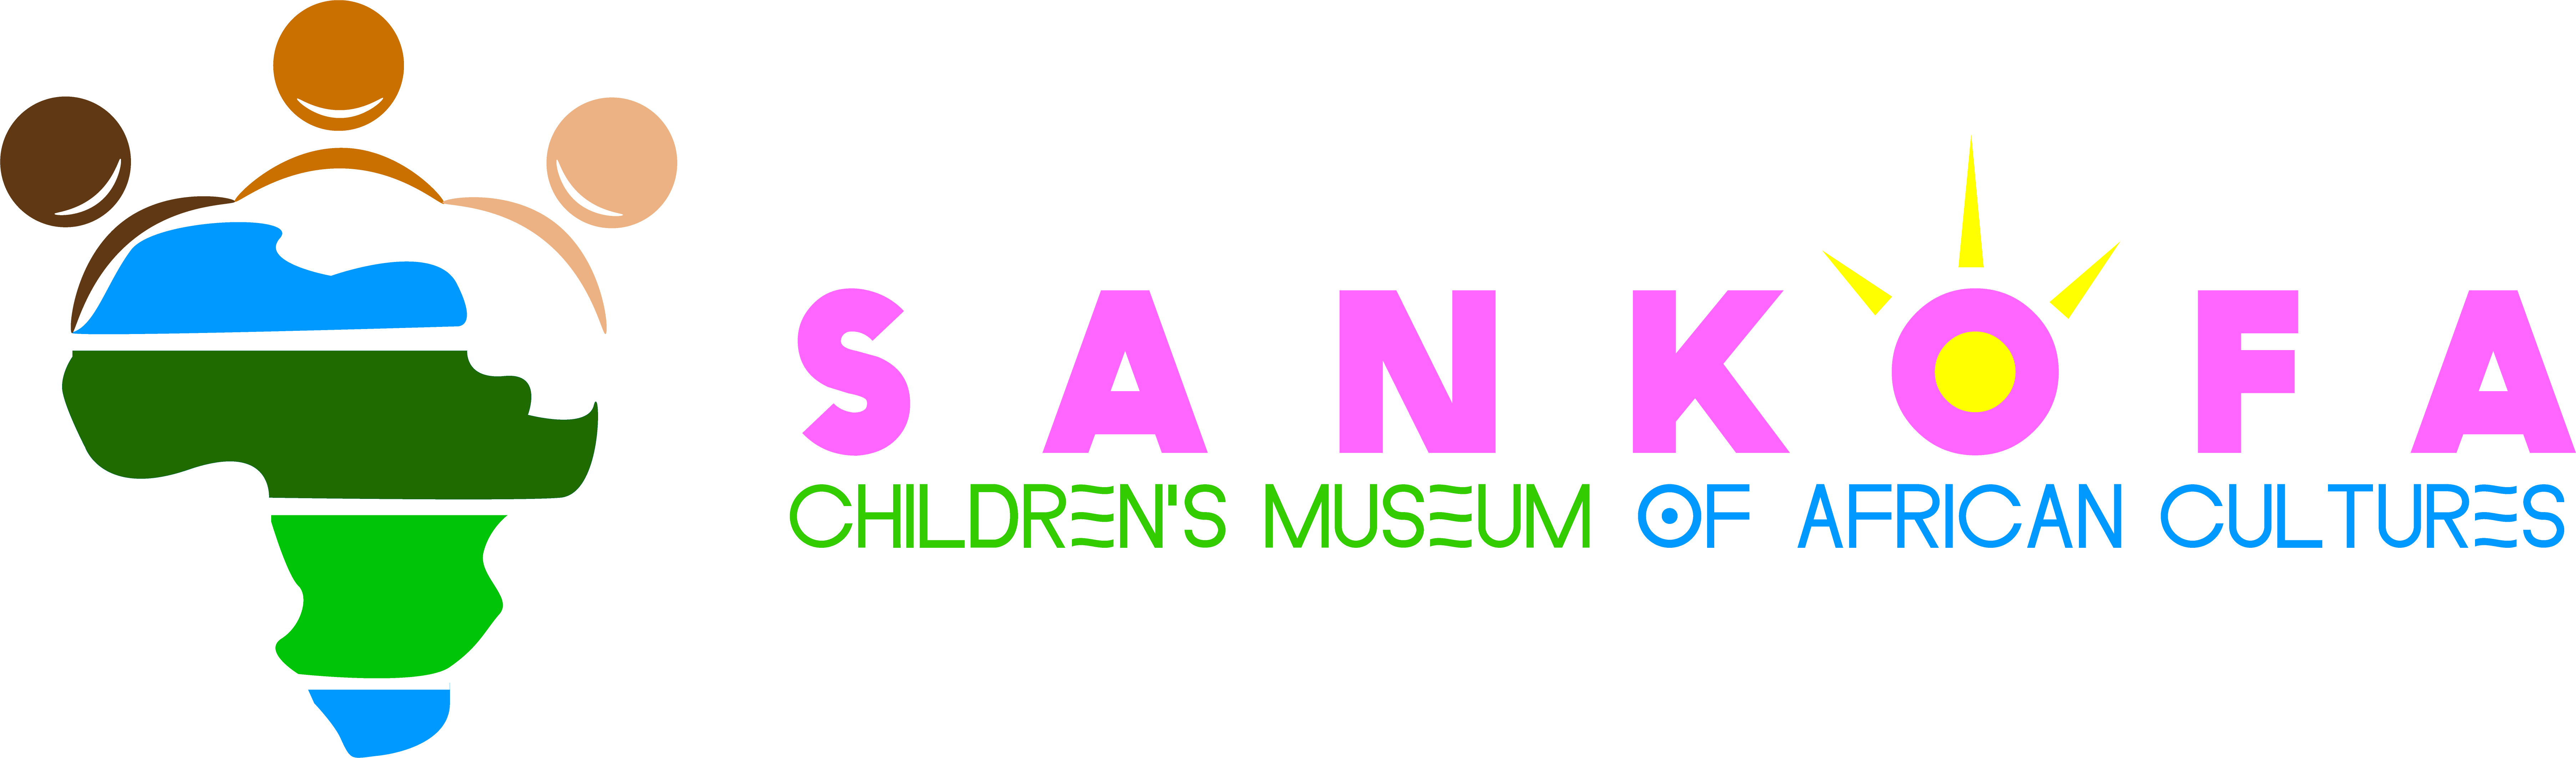 Sankofa Children's Museum